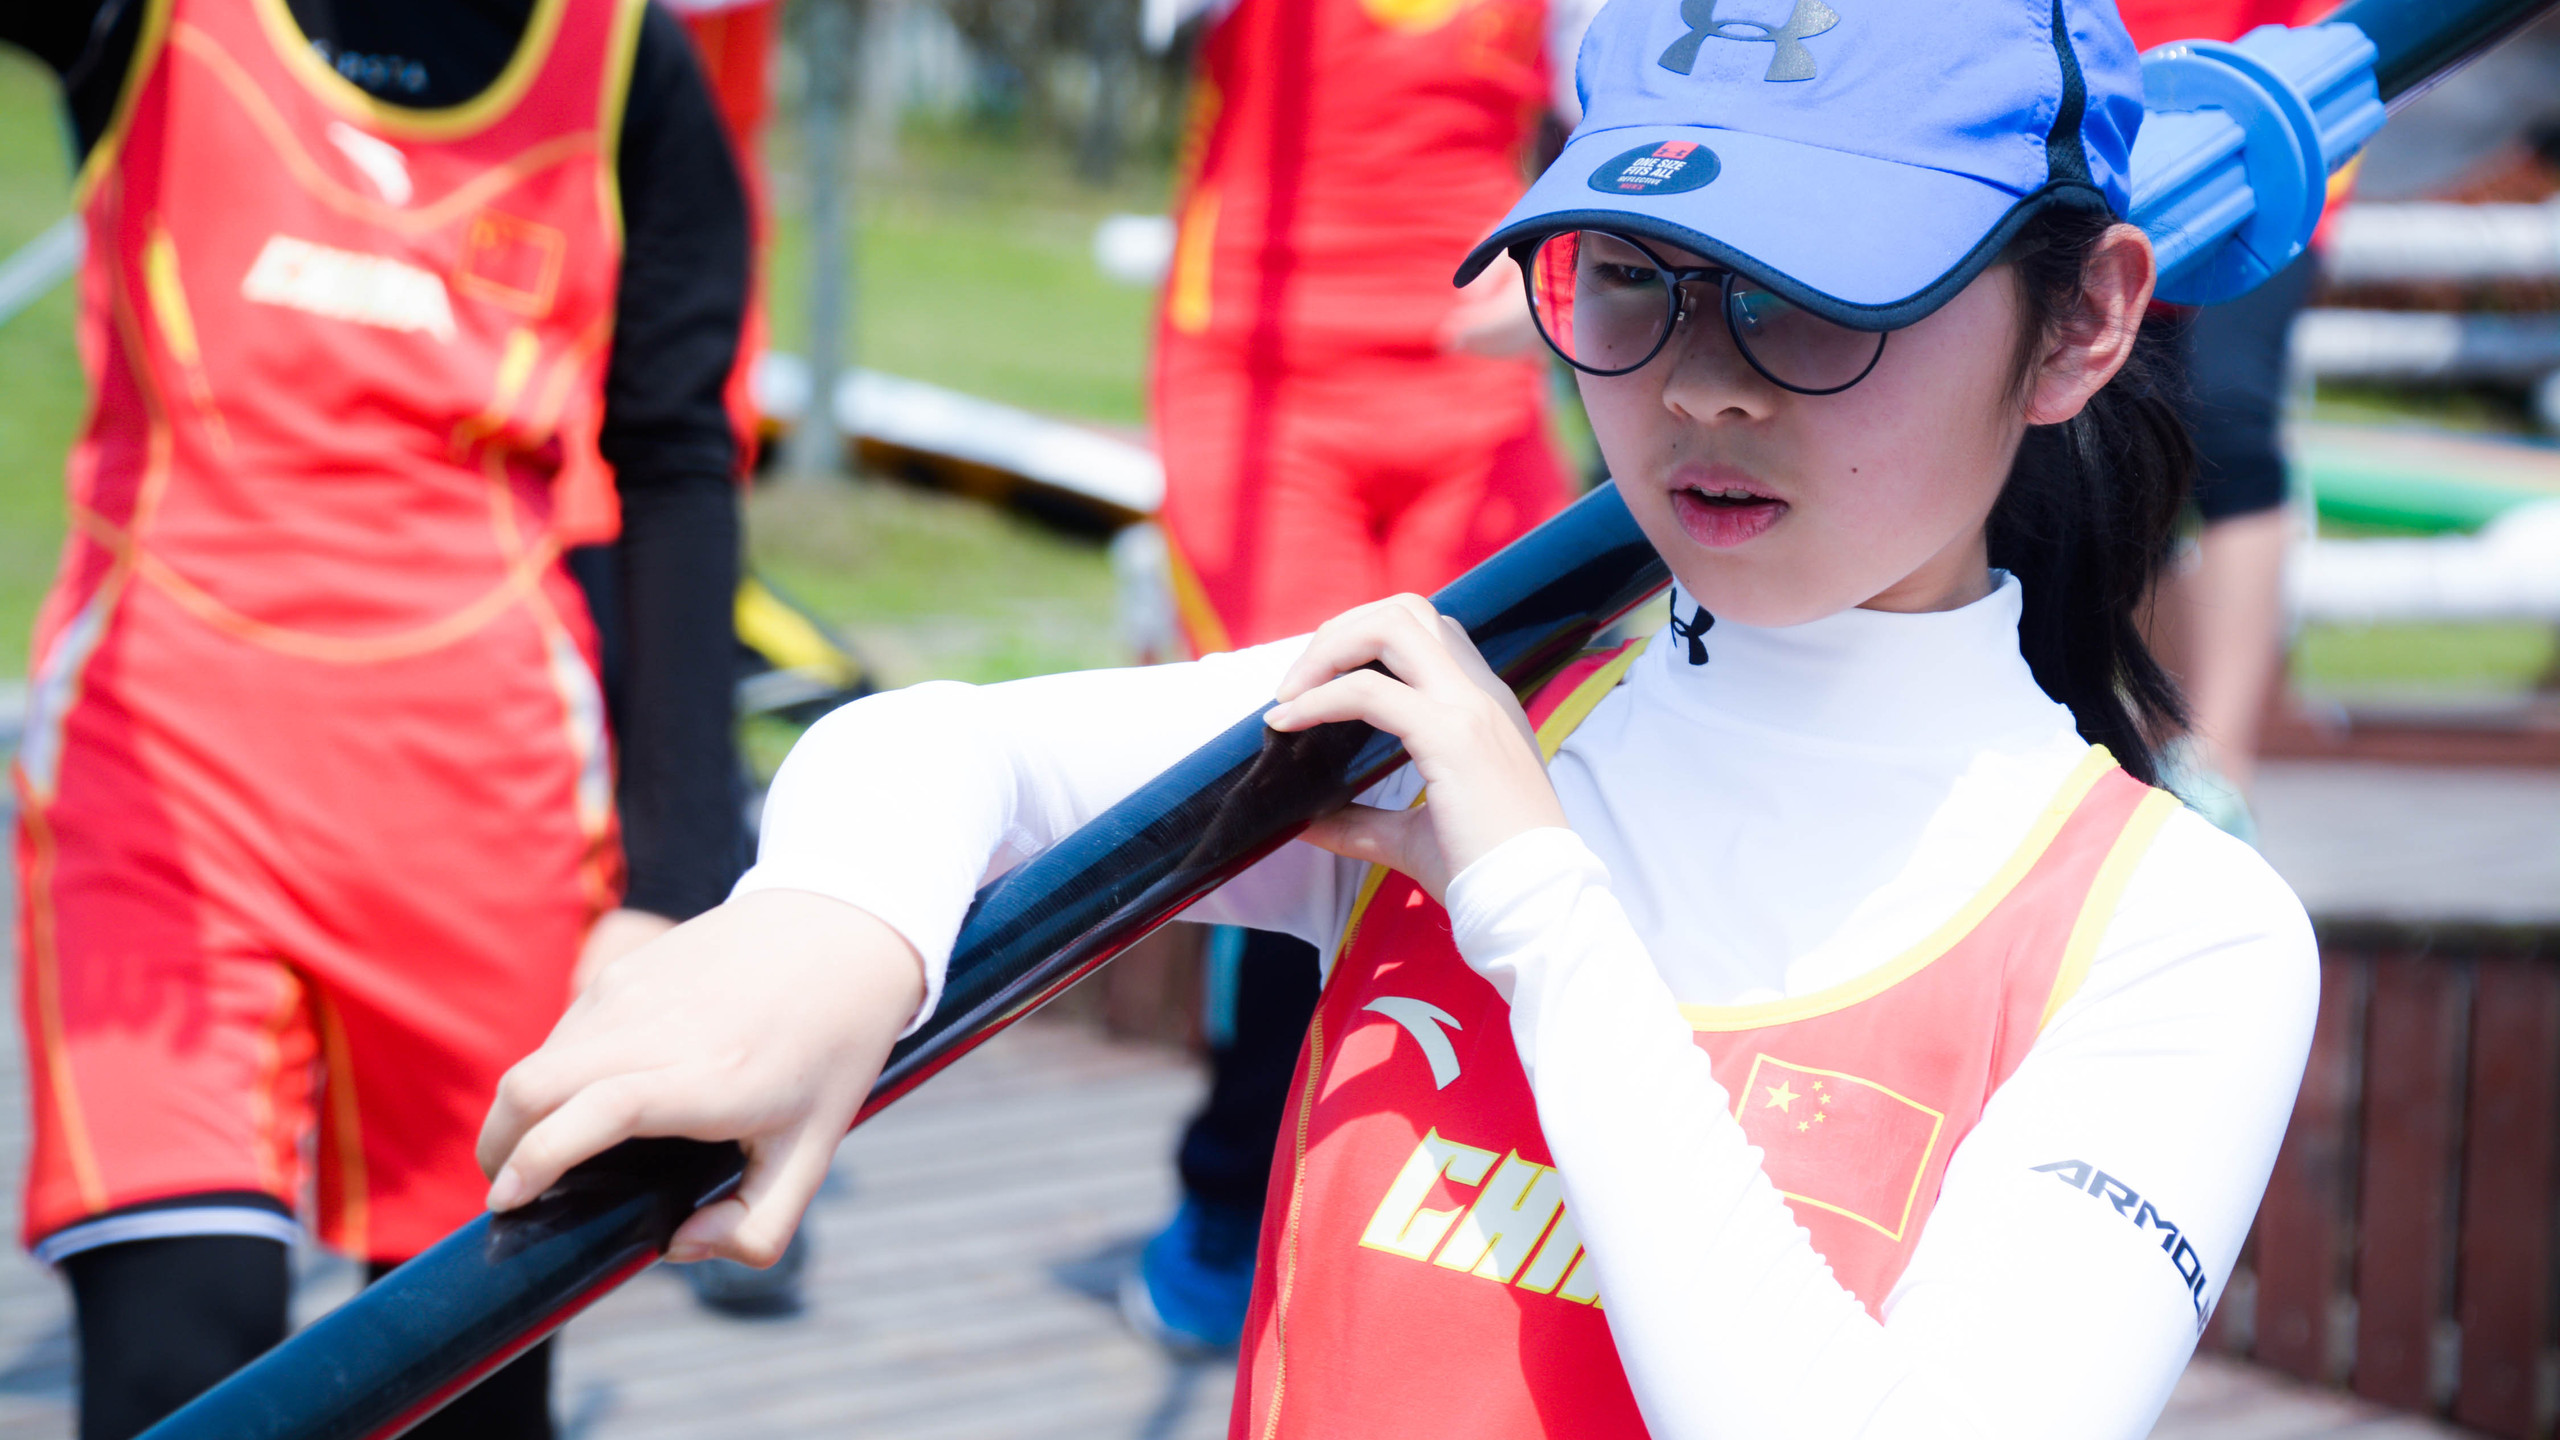 After the official greetings and pix, the young Chinese novices started to bring down the oars.